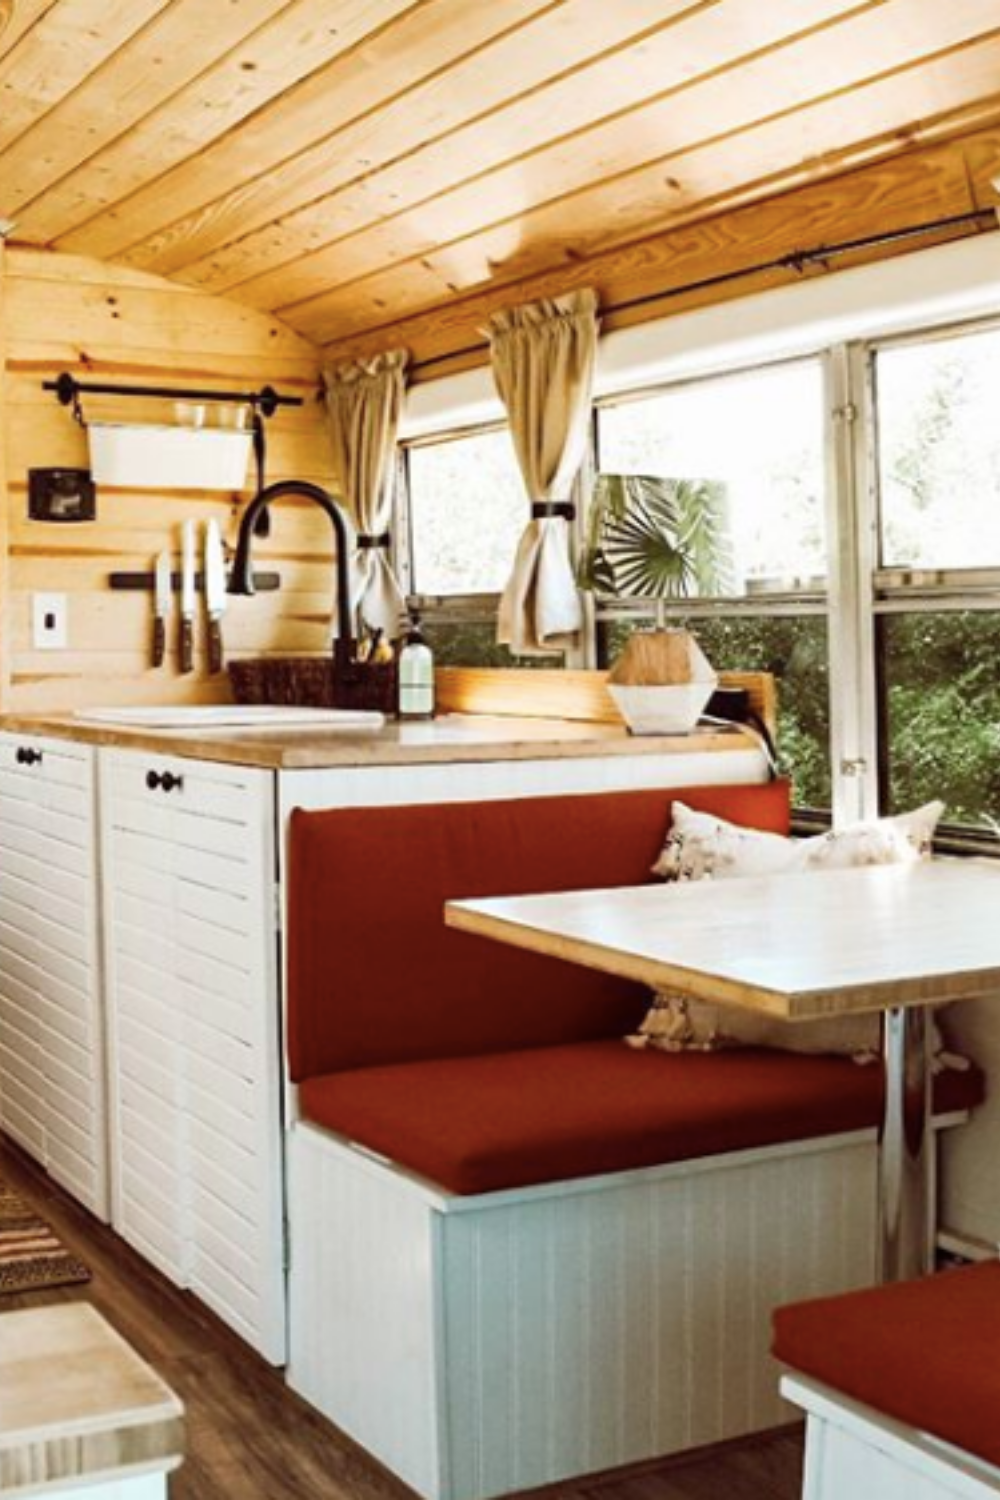 Check out some of the best school bus conversion ideas from short buses to full size skoolies!  #tinyhouseonwheels #skoolieconversion #schoolbusconversion